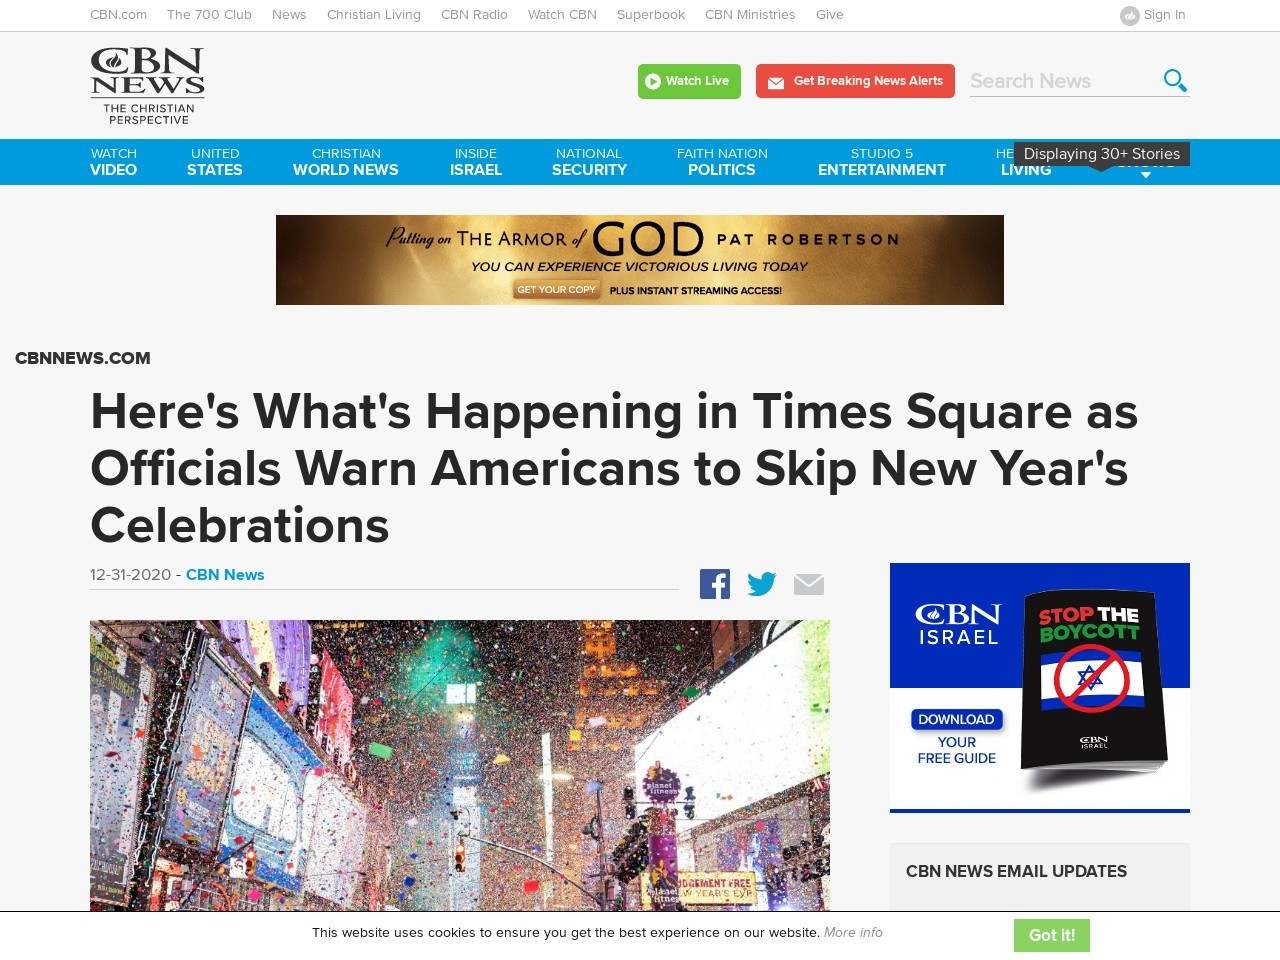 Here's What's Happening in Times Square as Officials Warn Americans to Skip New Year's Celebrations